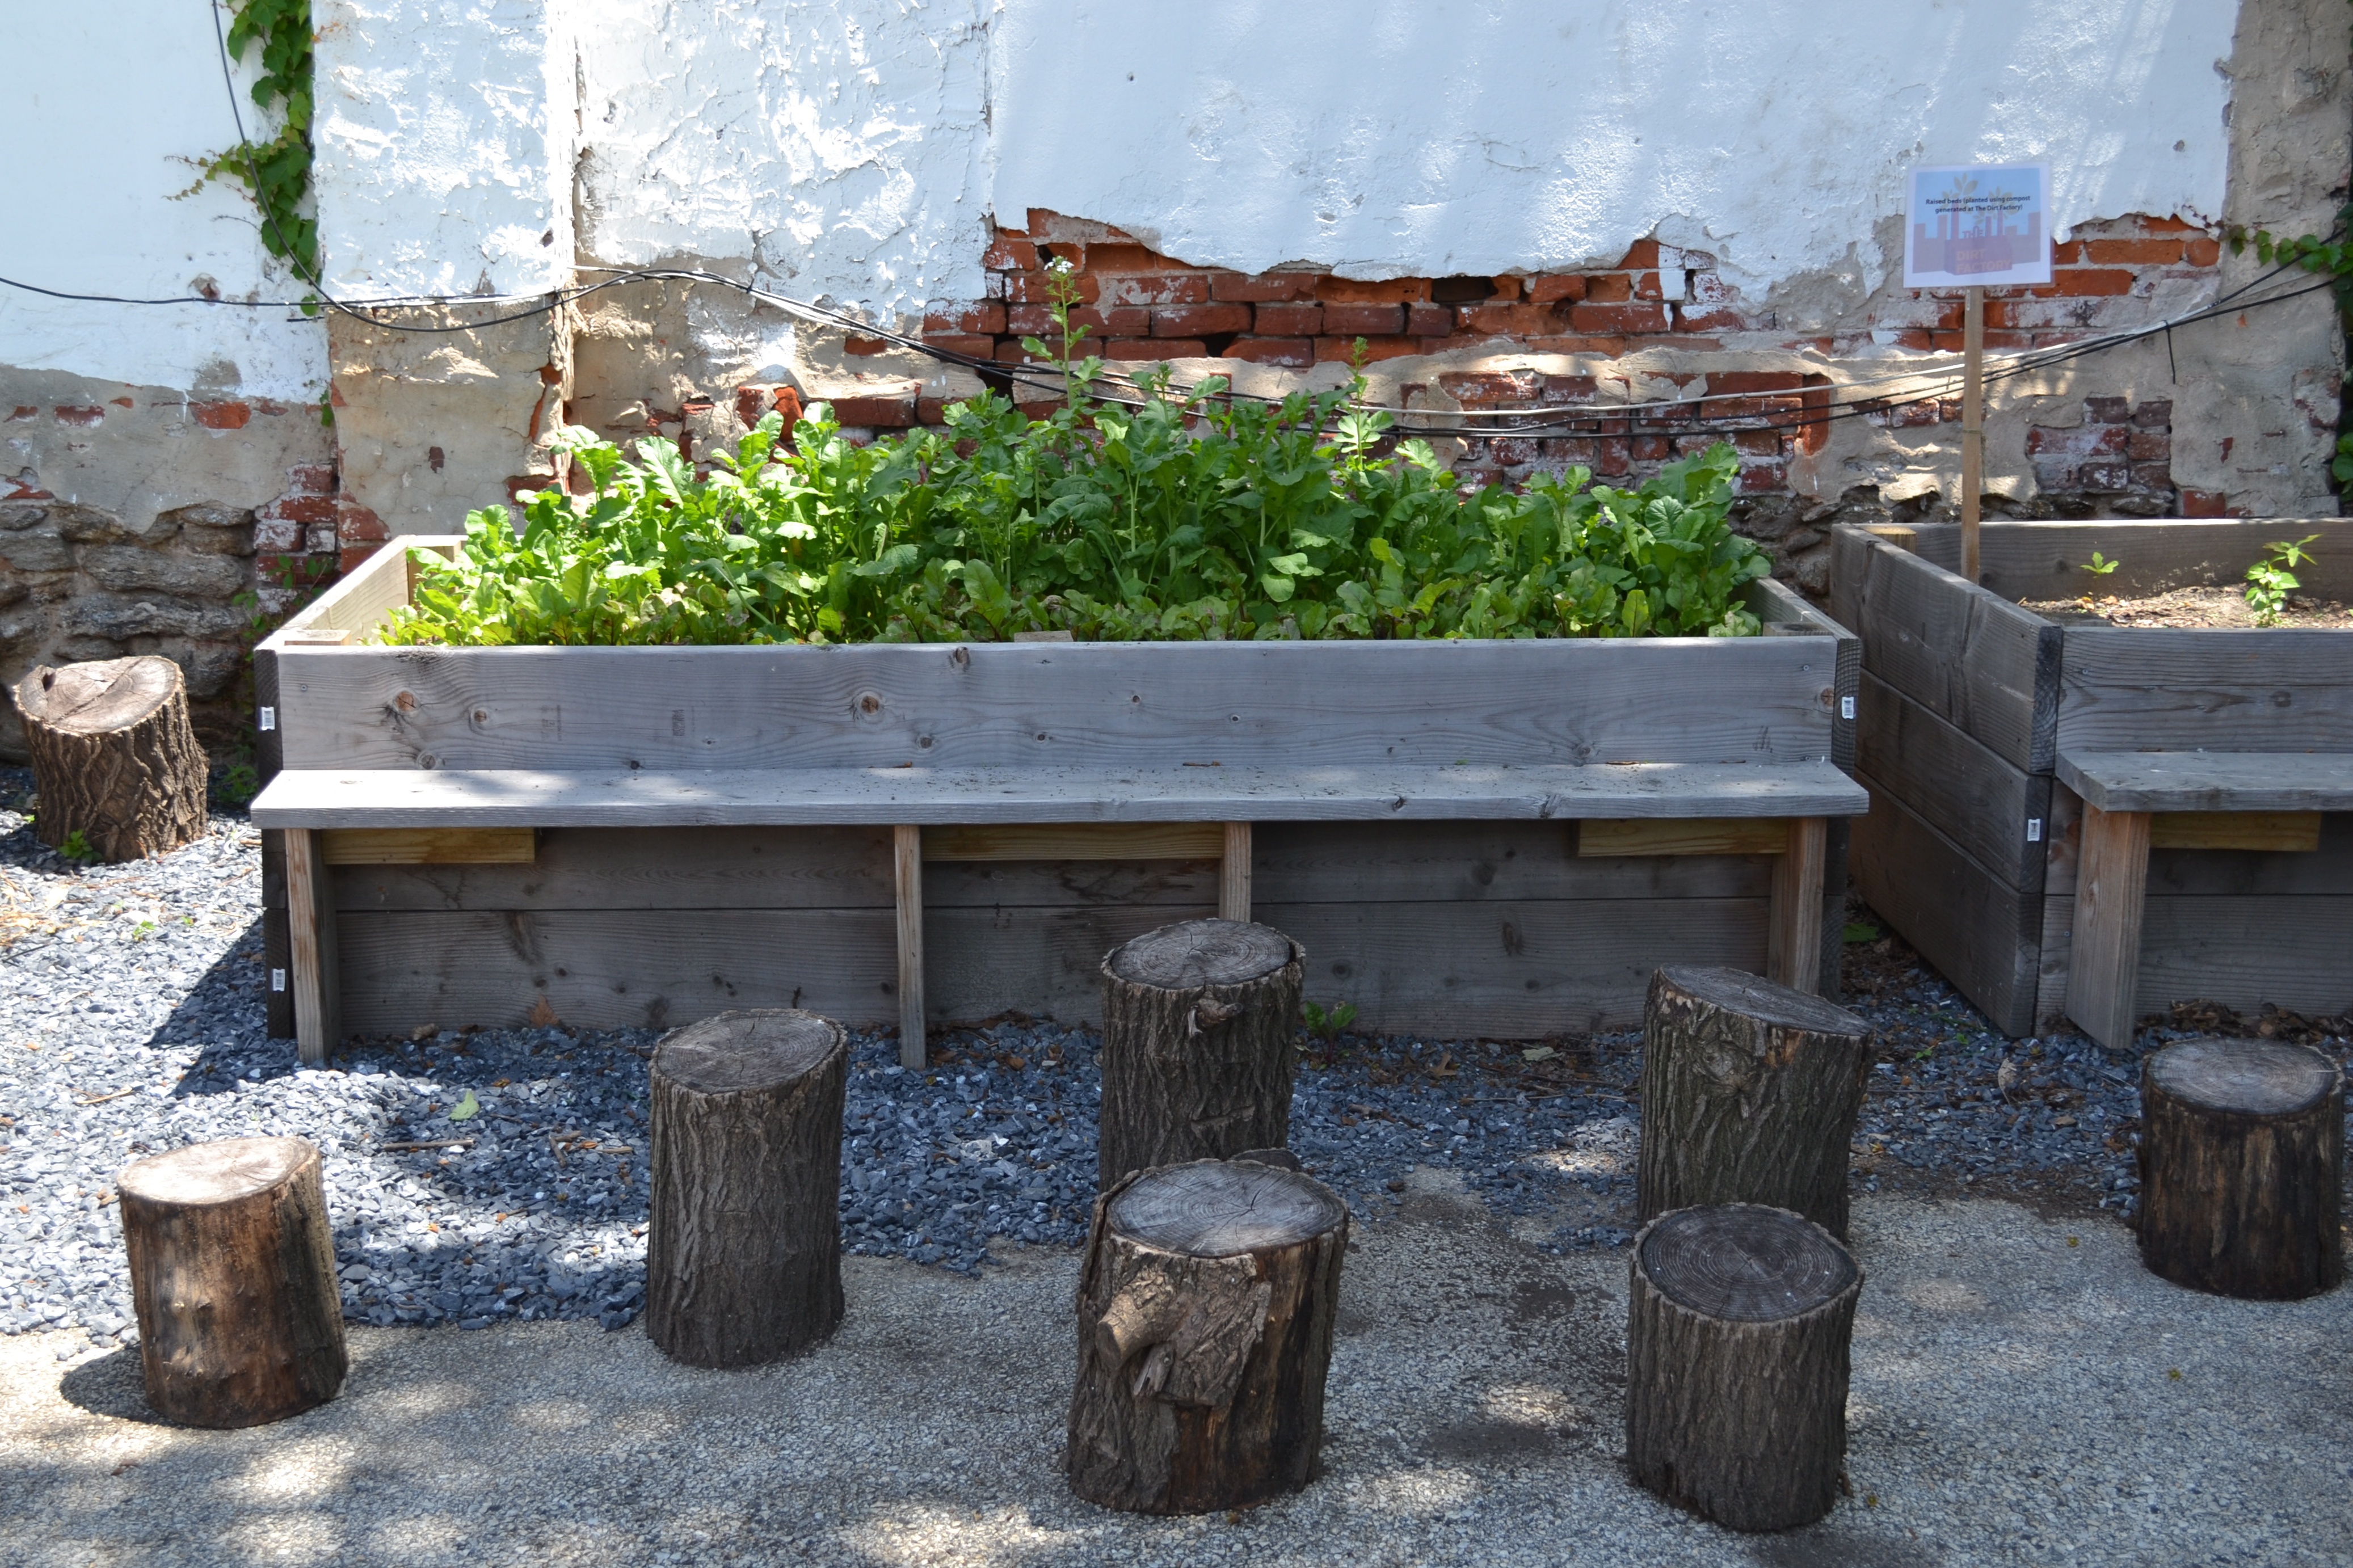 With recycled stump seating and vegetable beds, The Dirt Factory also serves as a community space